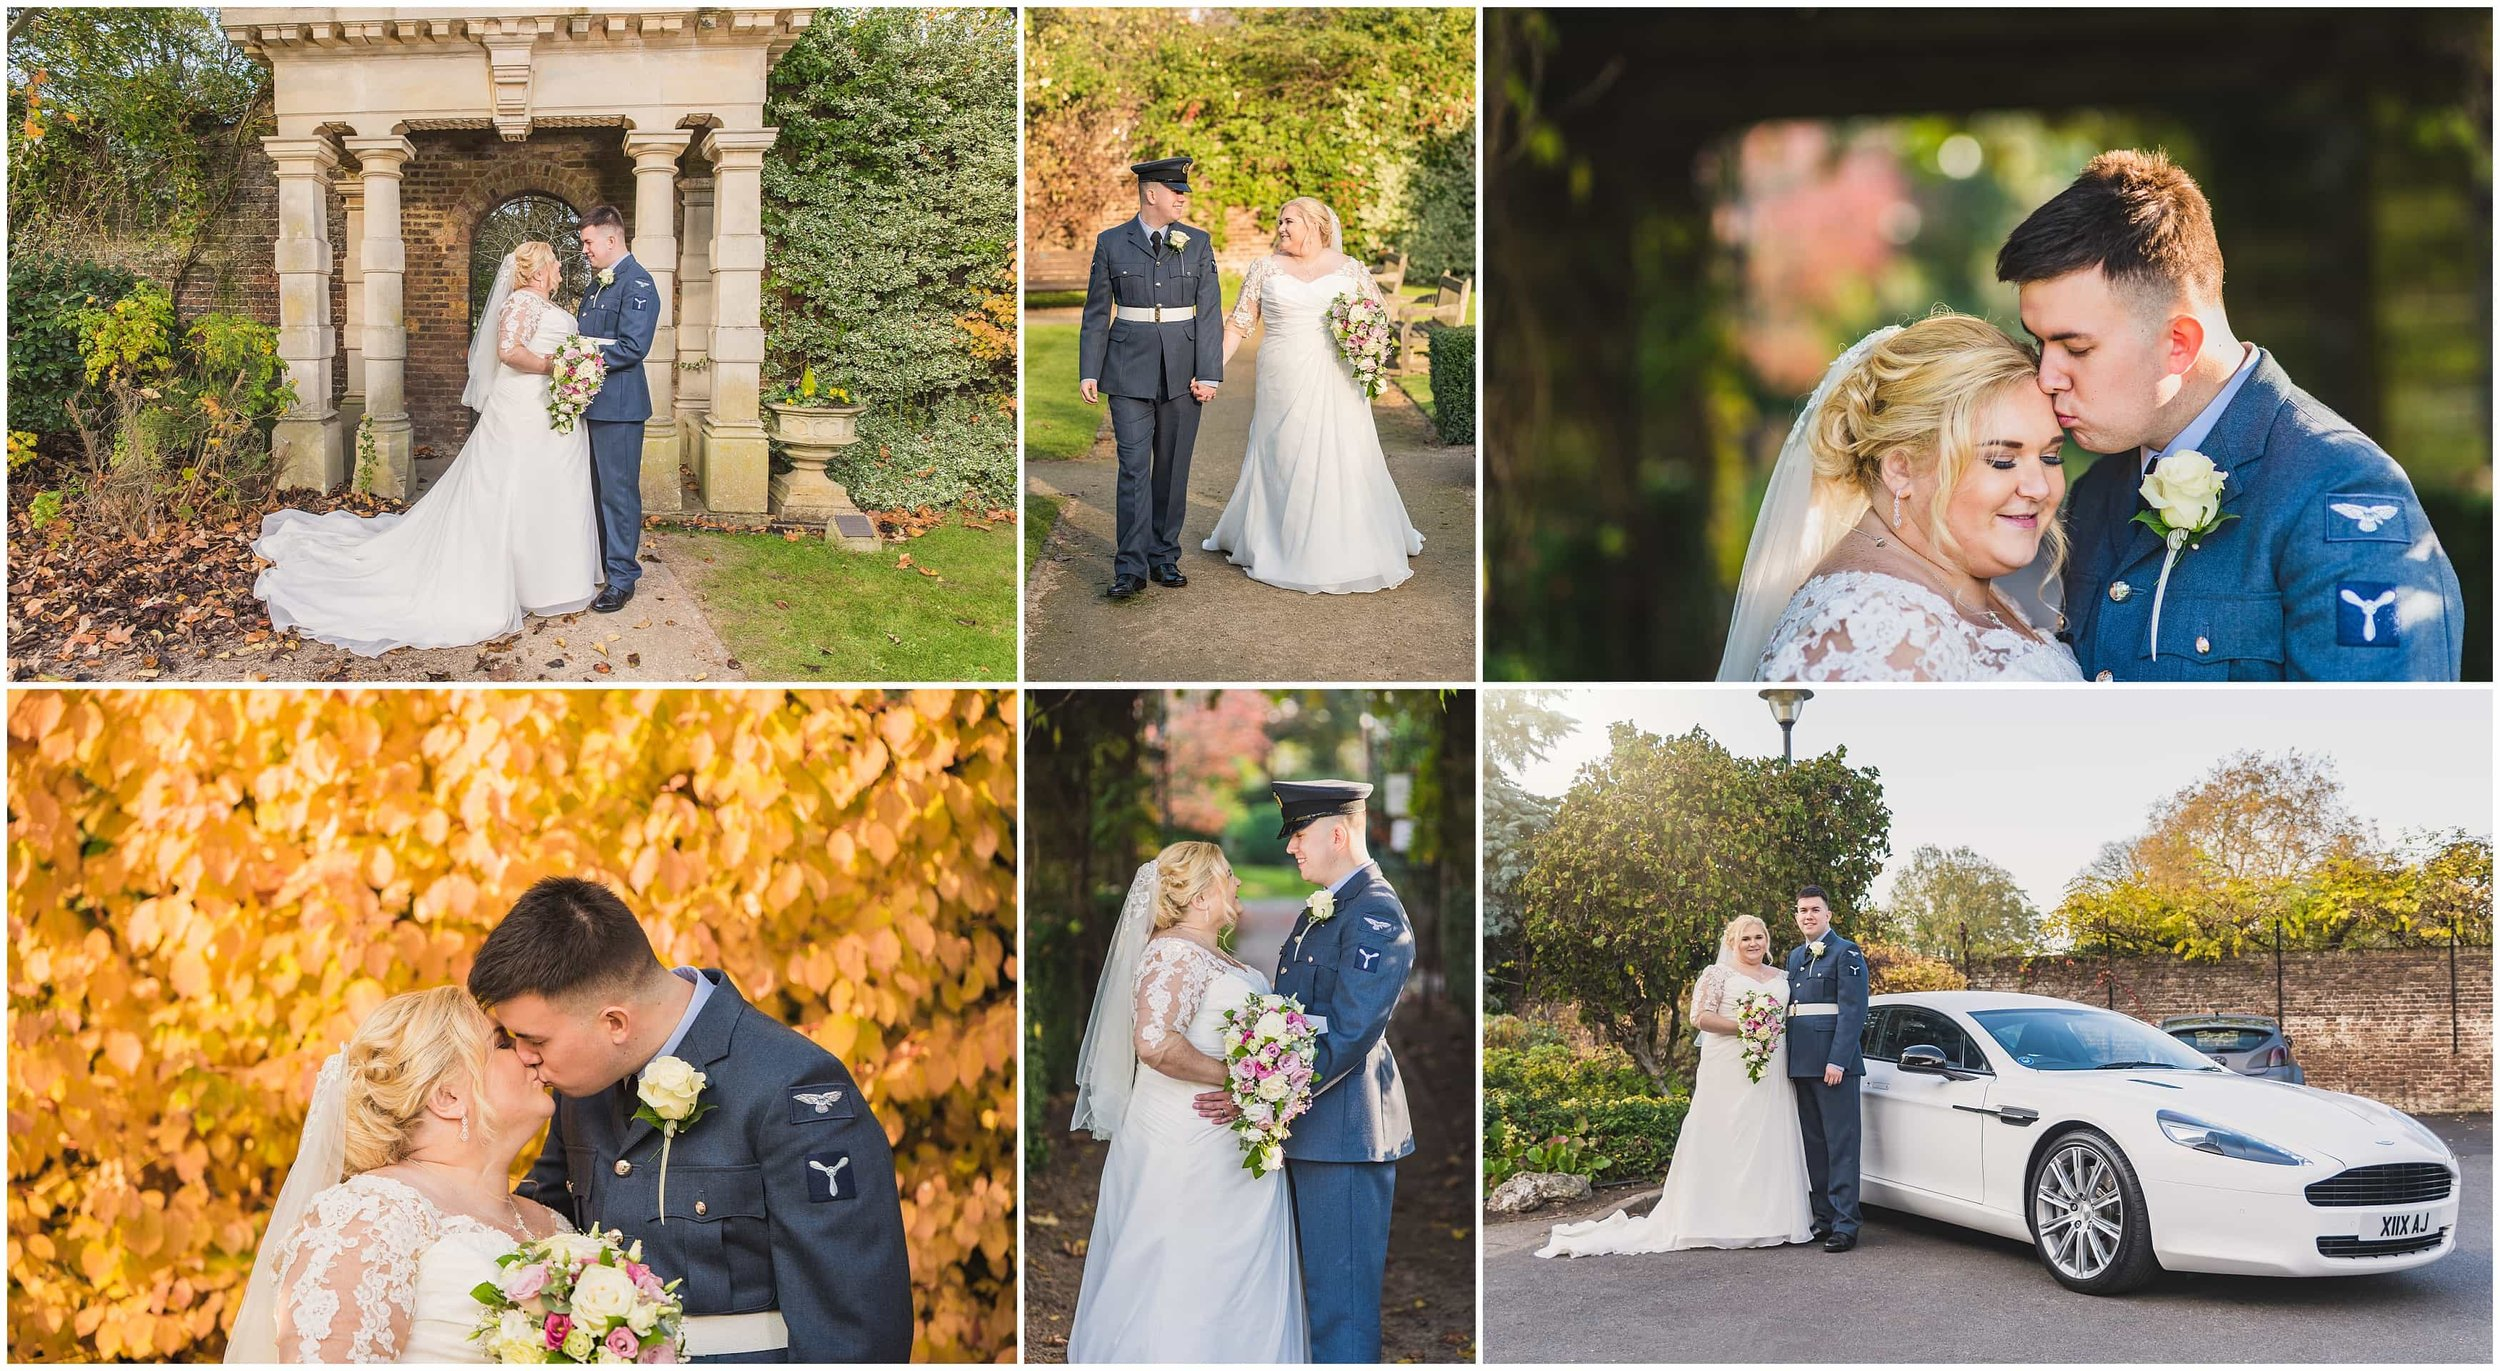 Bride and Groom Portraits in the idyllic Walled Gardens in Sunbury on Thames